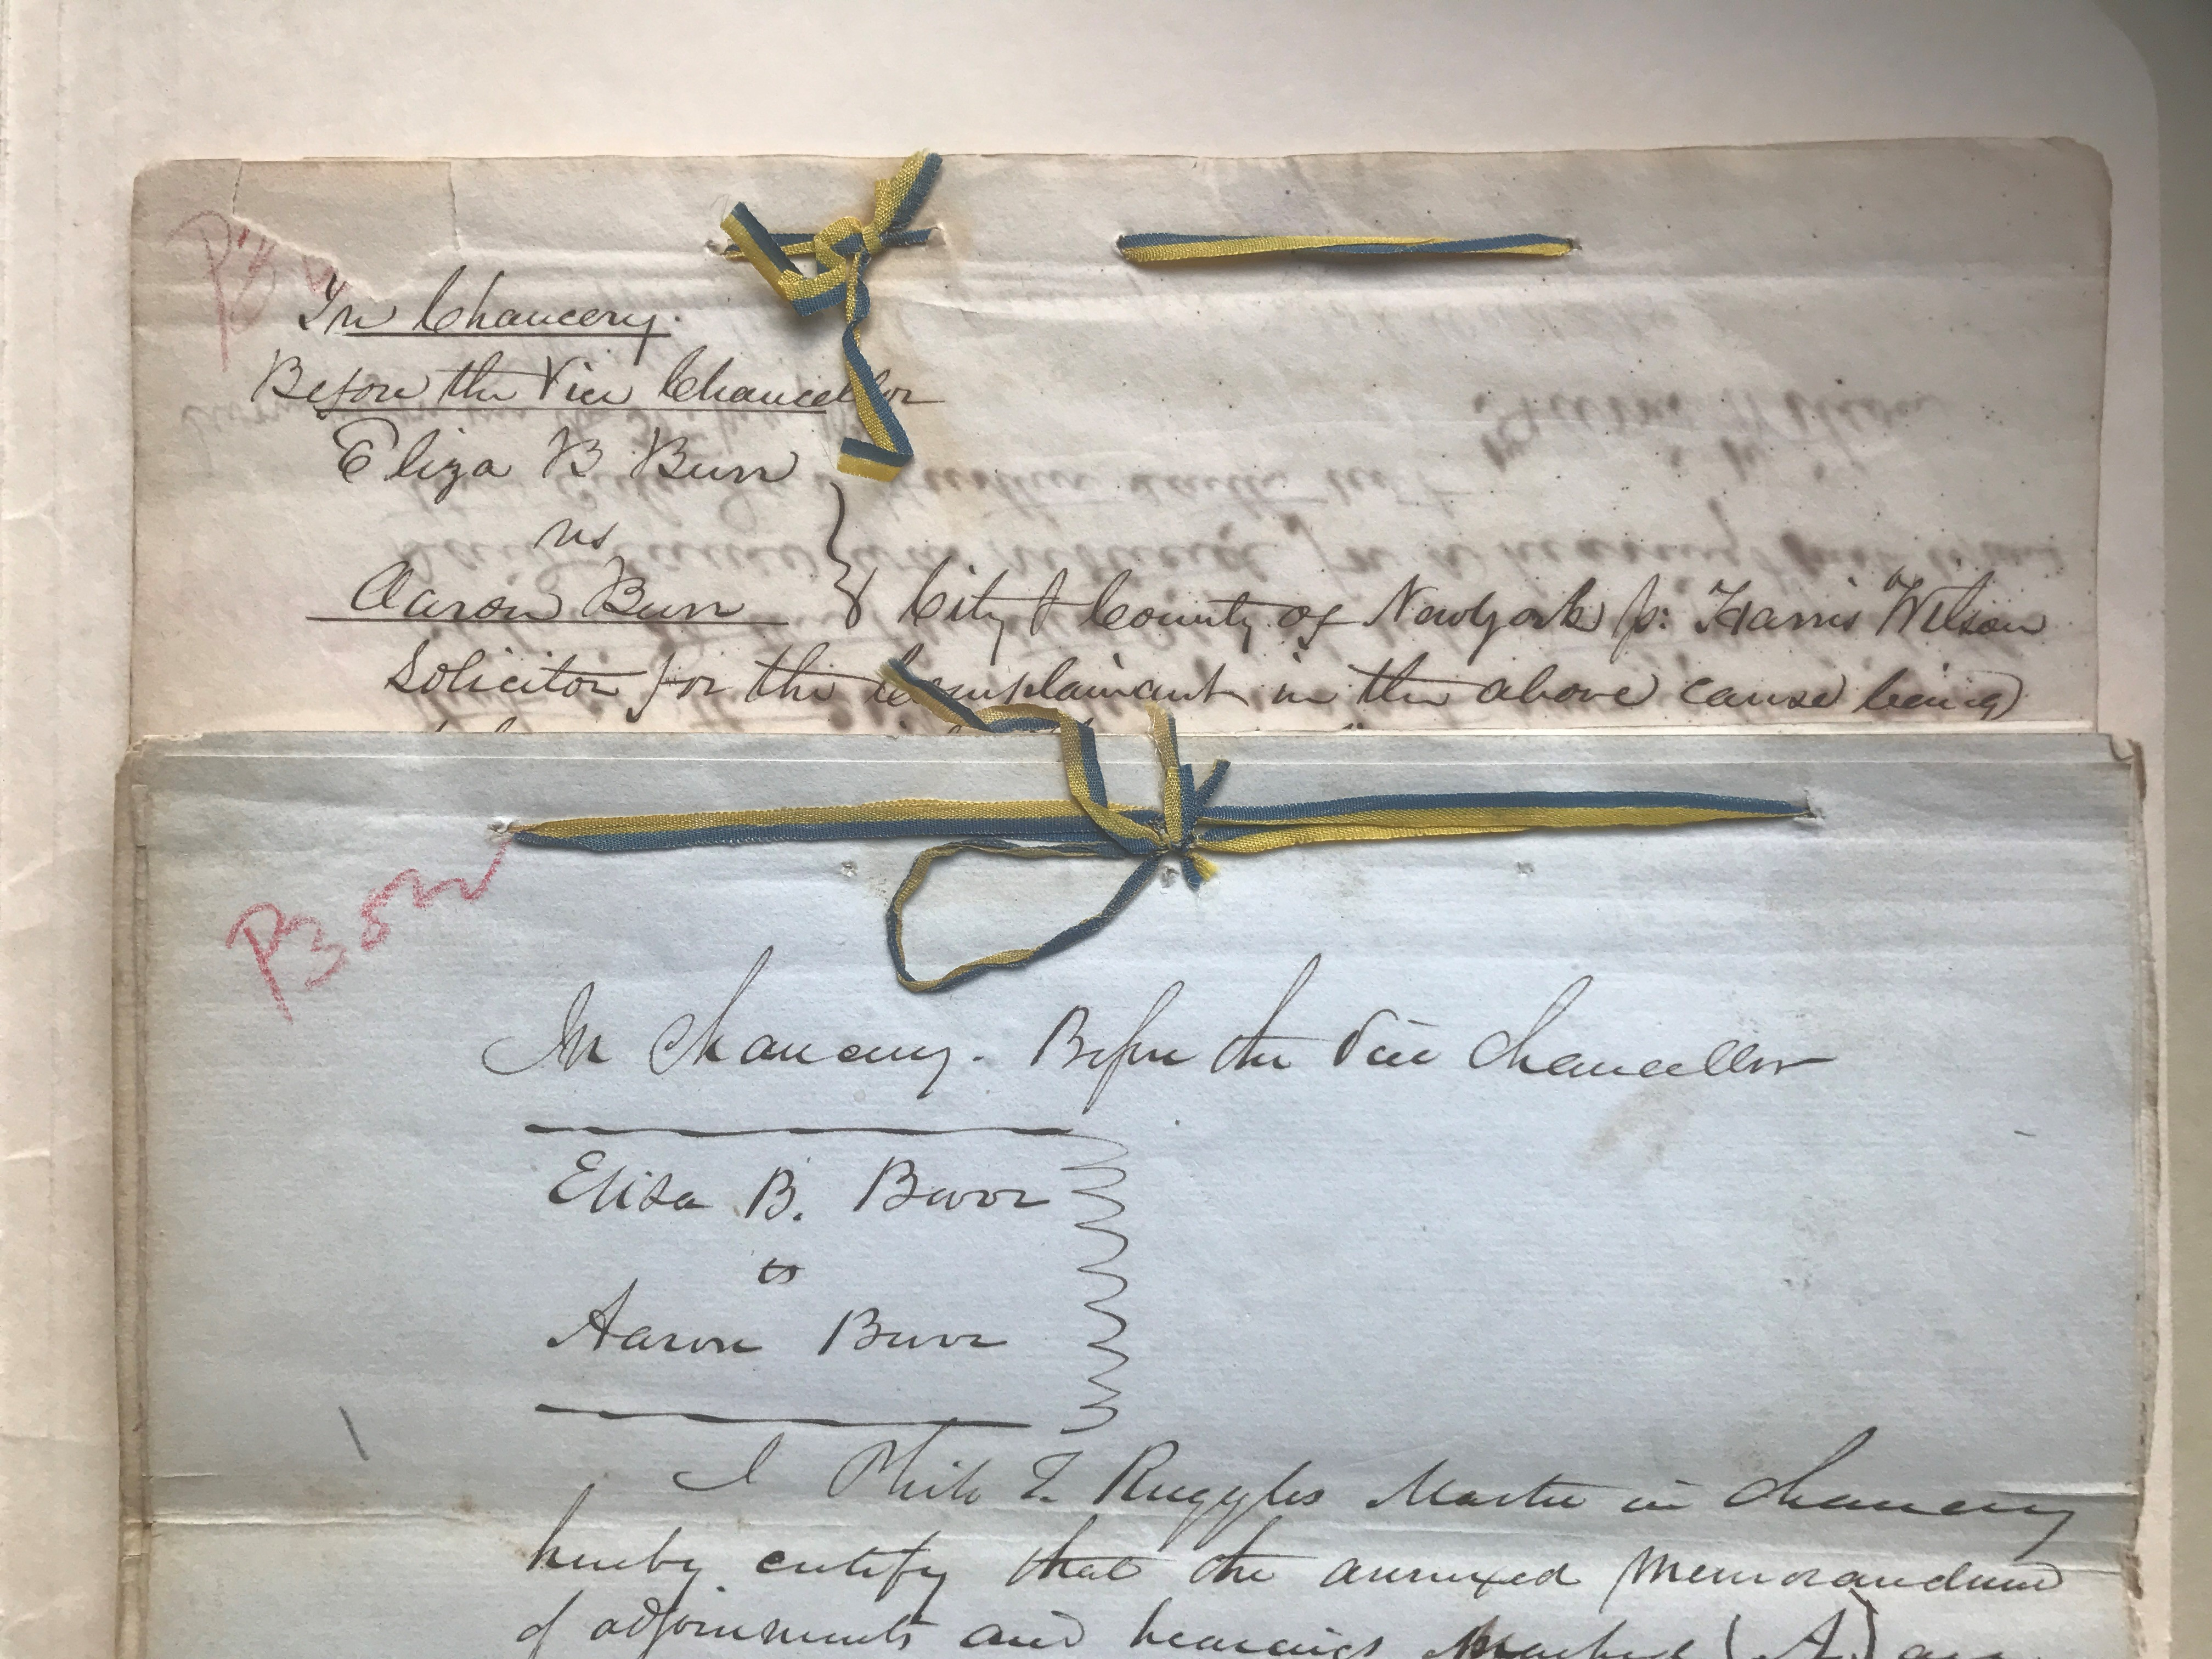 Court of Chancery Affidavits in the Divorce Case Eliza B. Burr and Aaron Burr (1836)